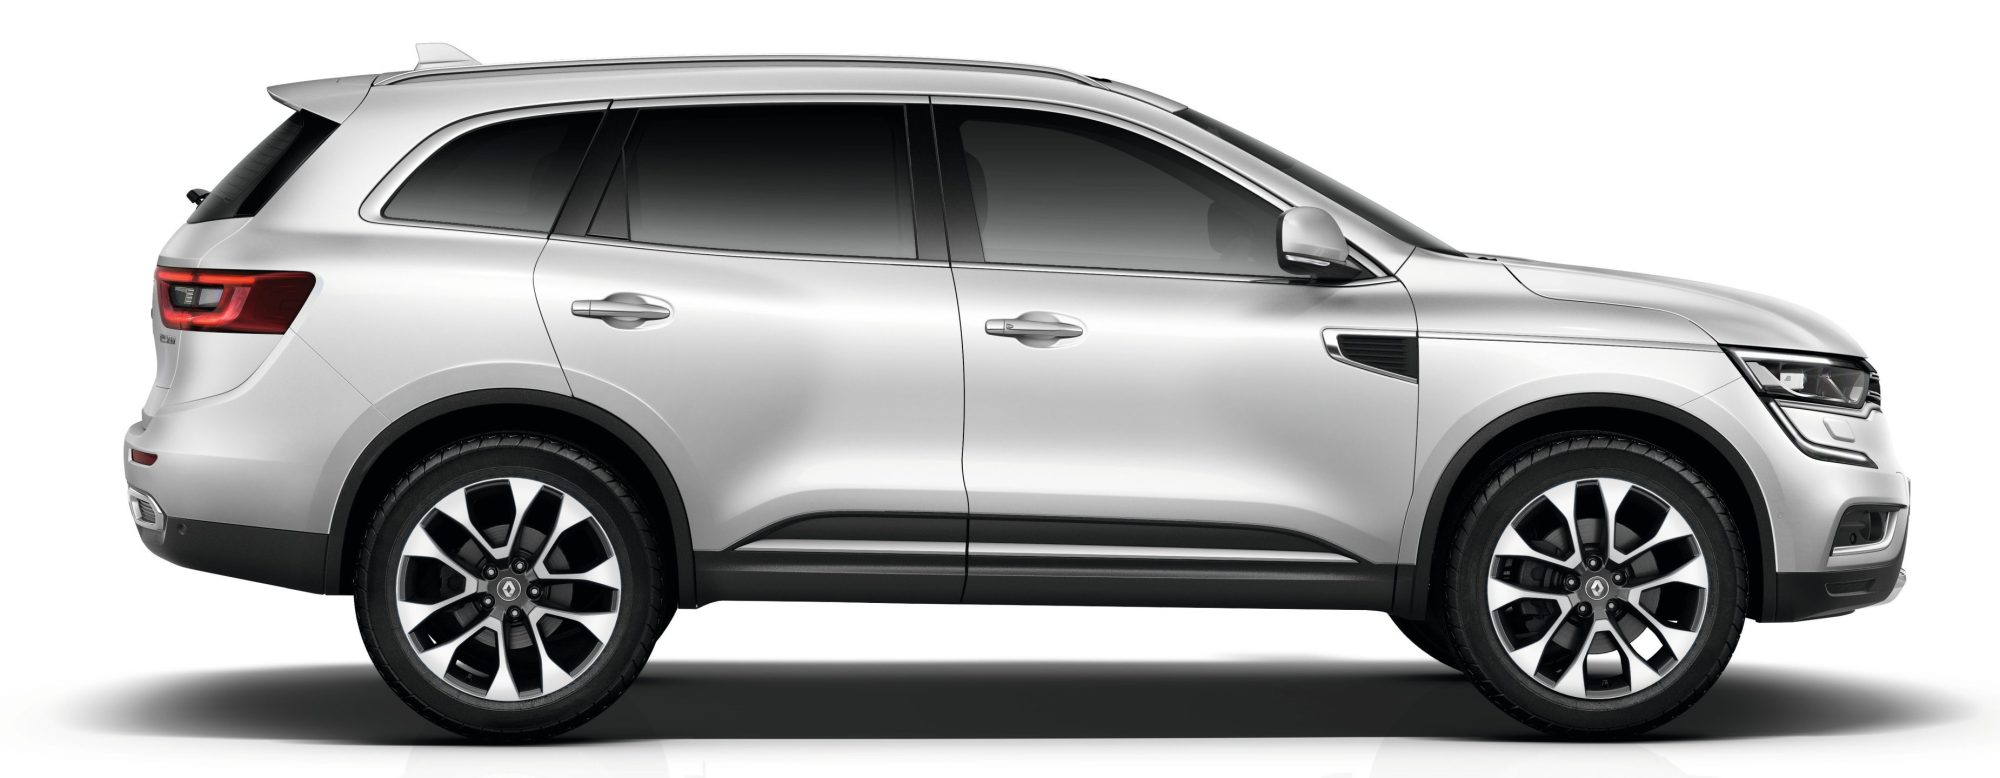 hight resolution of renault koleos